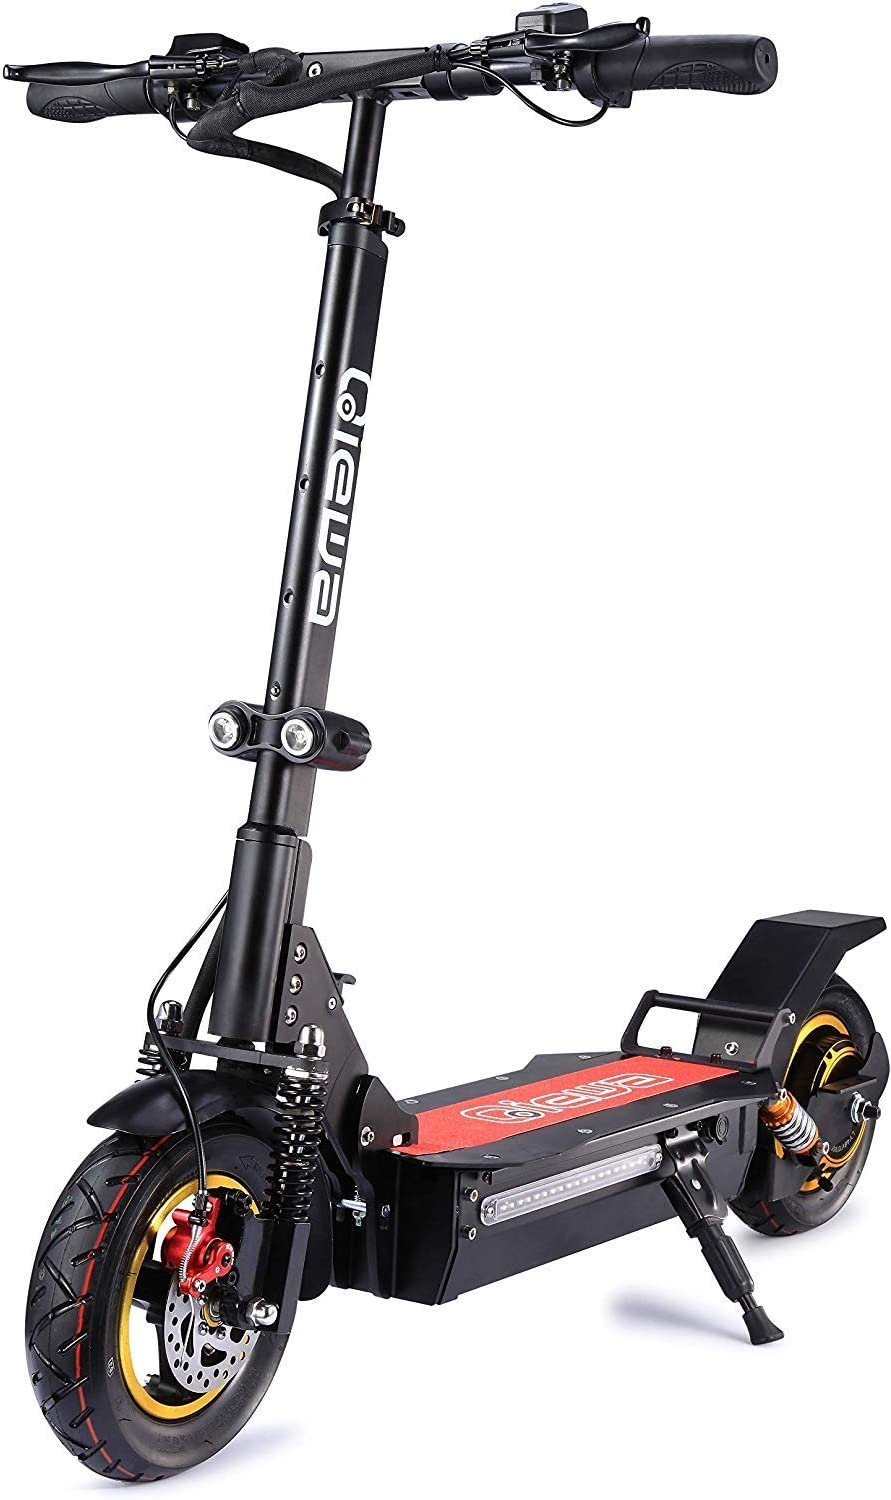 best electric scooter for climbing hills: QIEWA Q1Hummer 800Watts 37MPH Electric Scooter